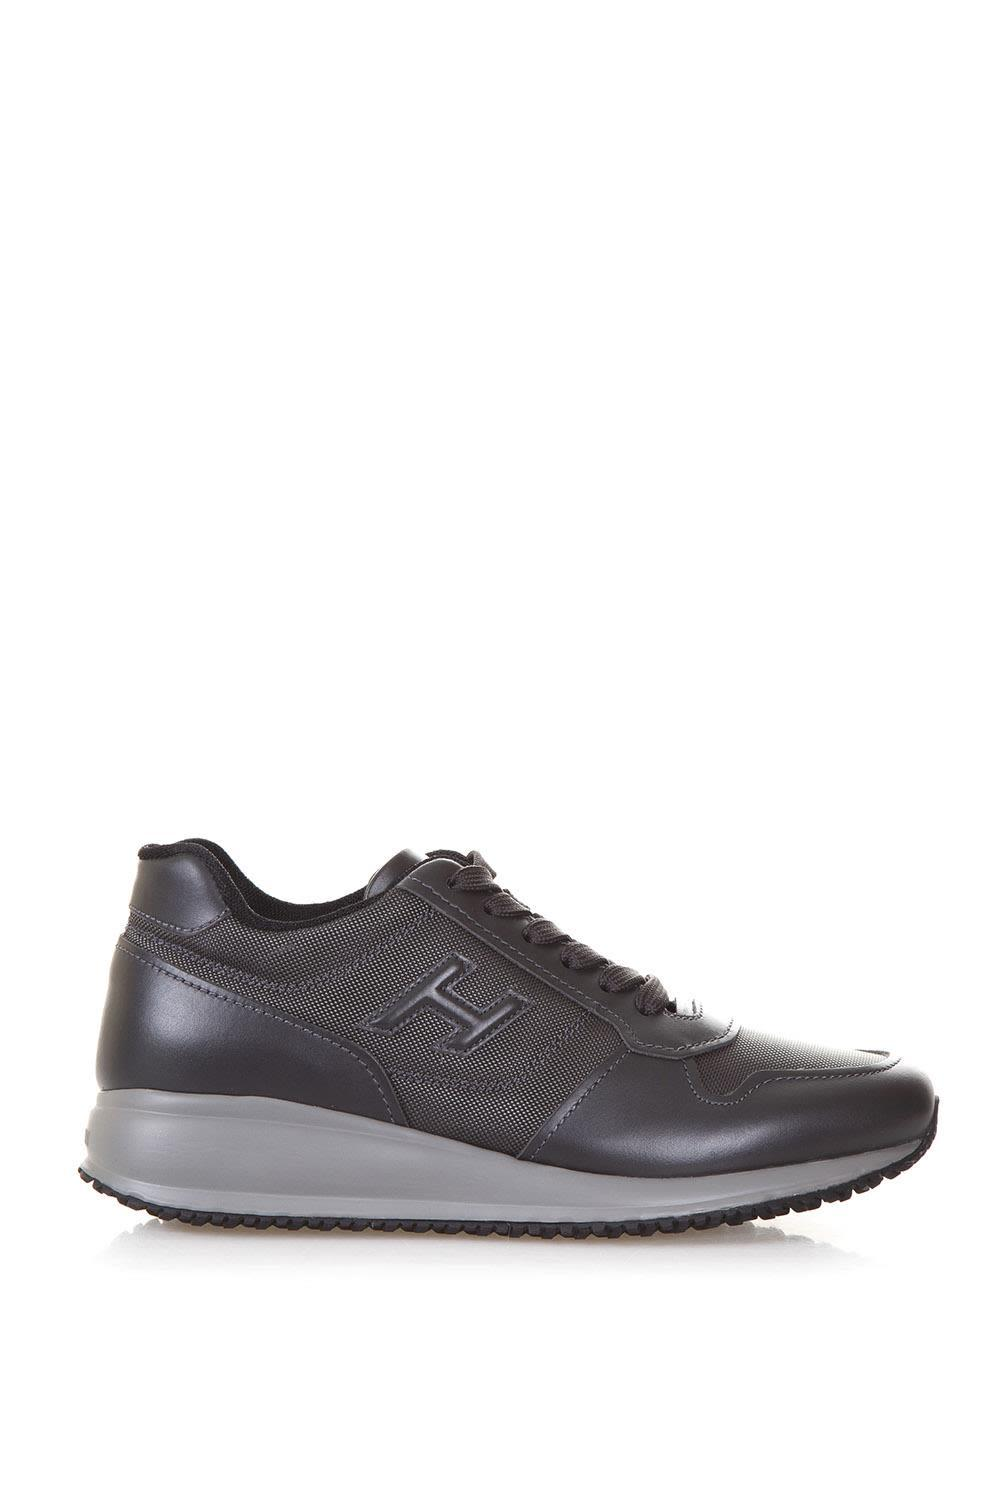 Hogan Men's Shoes Leather Trainers Sneakers Interactive N20 In Grey